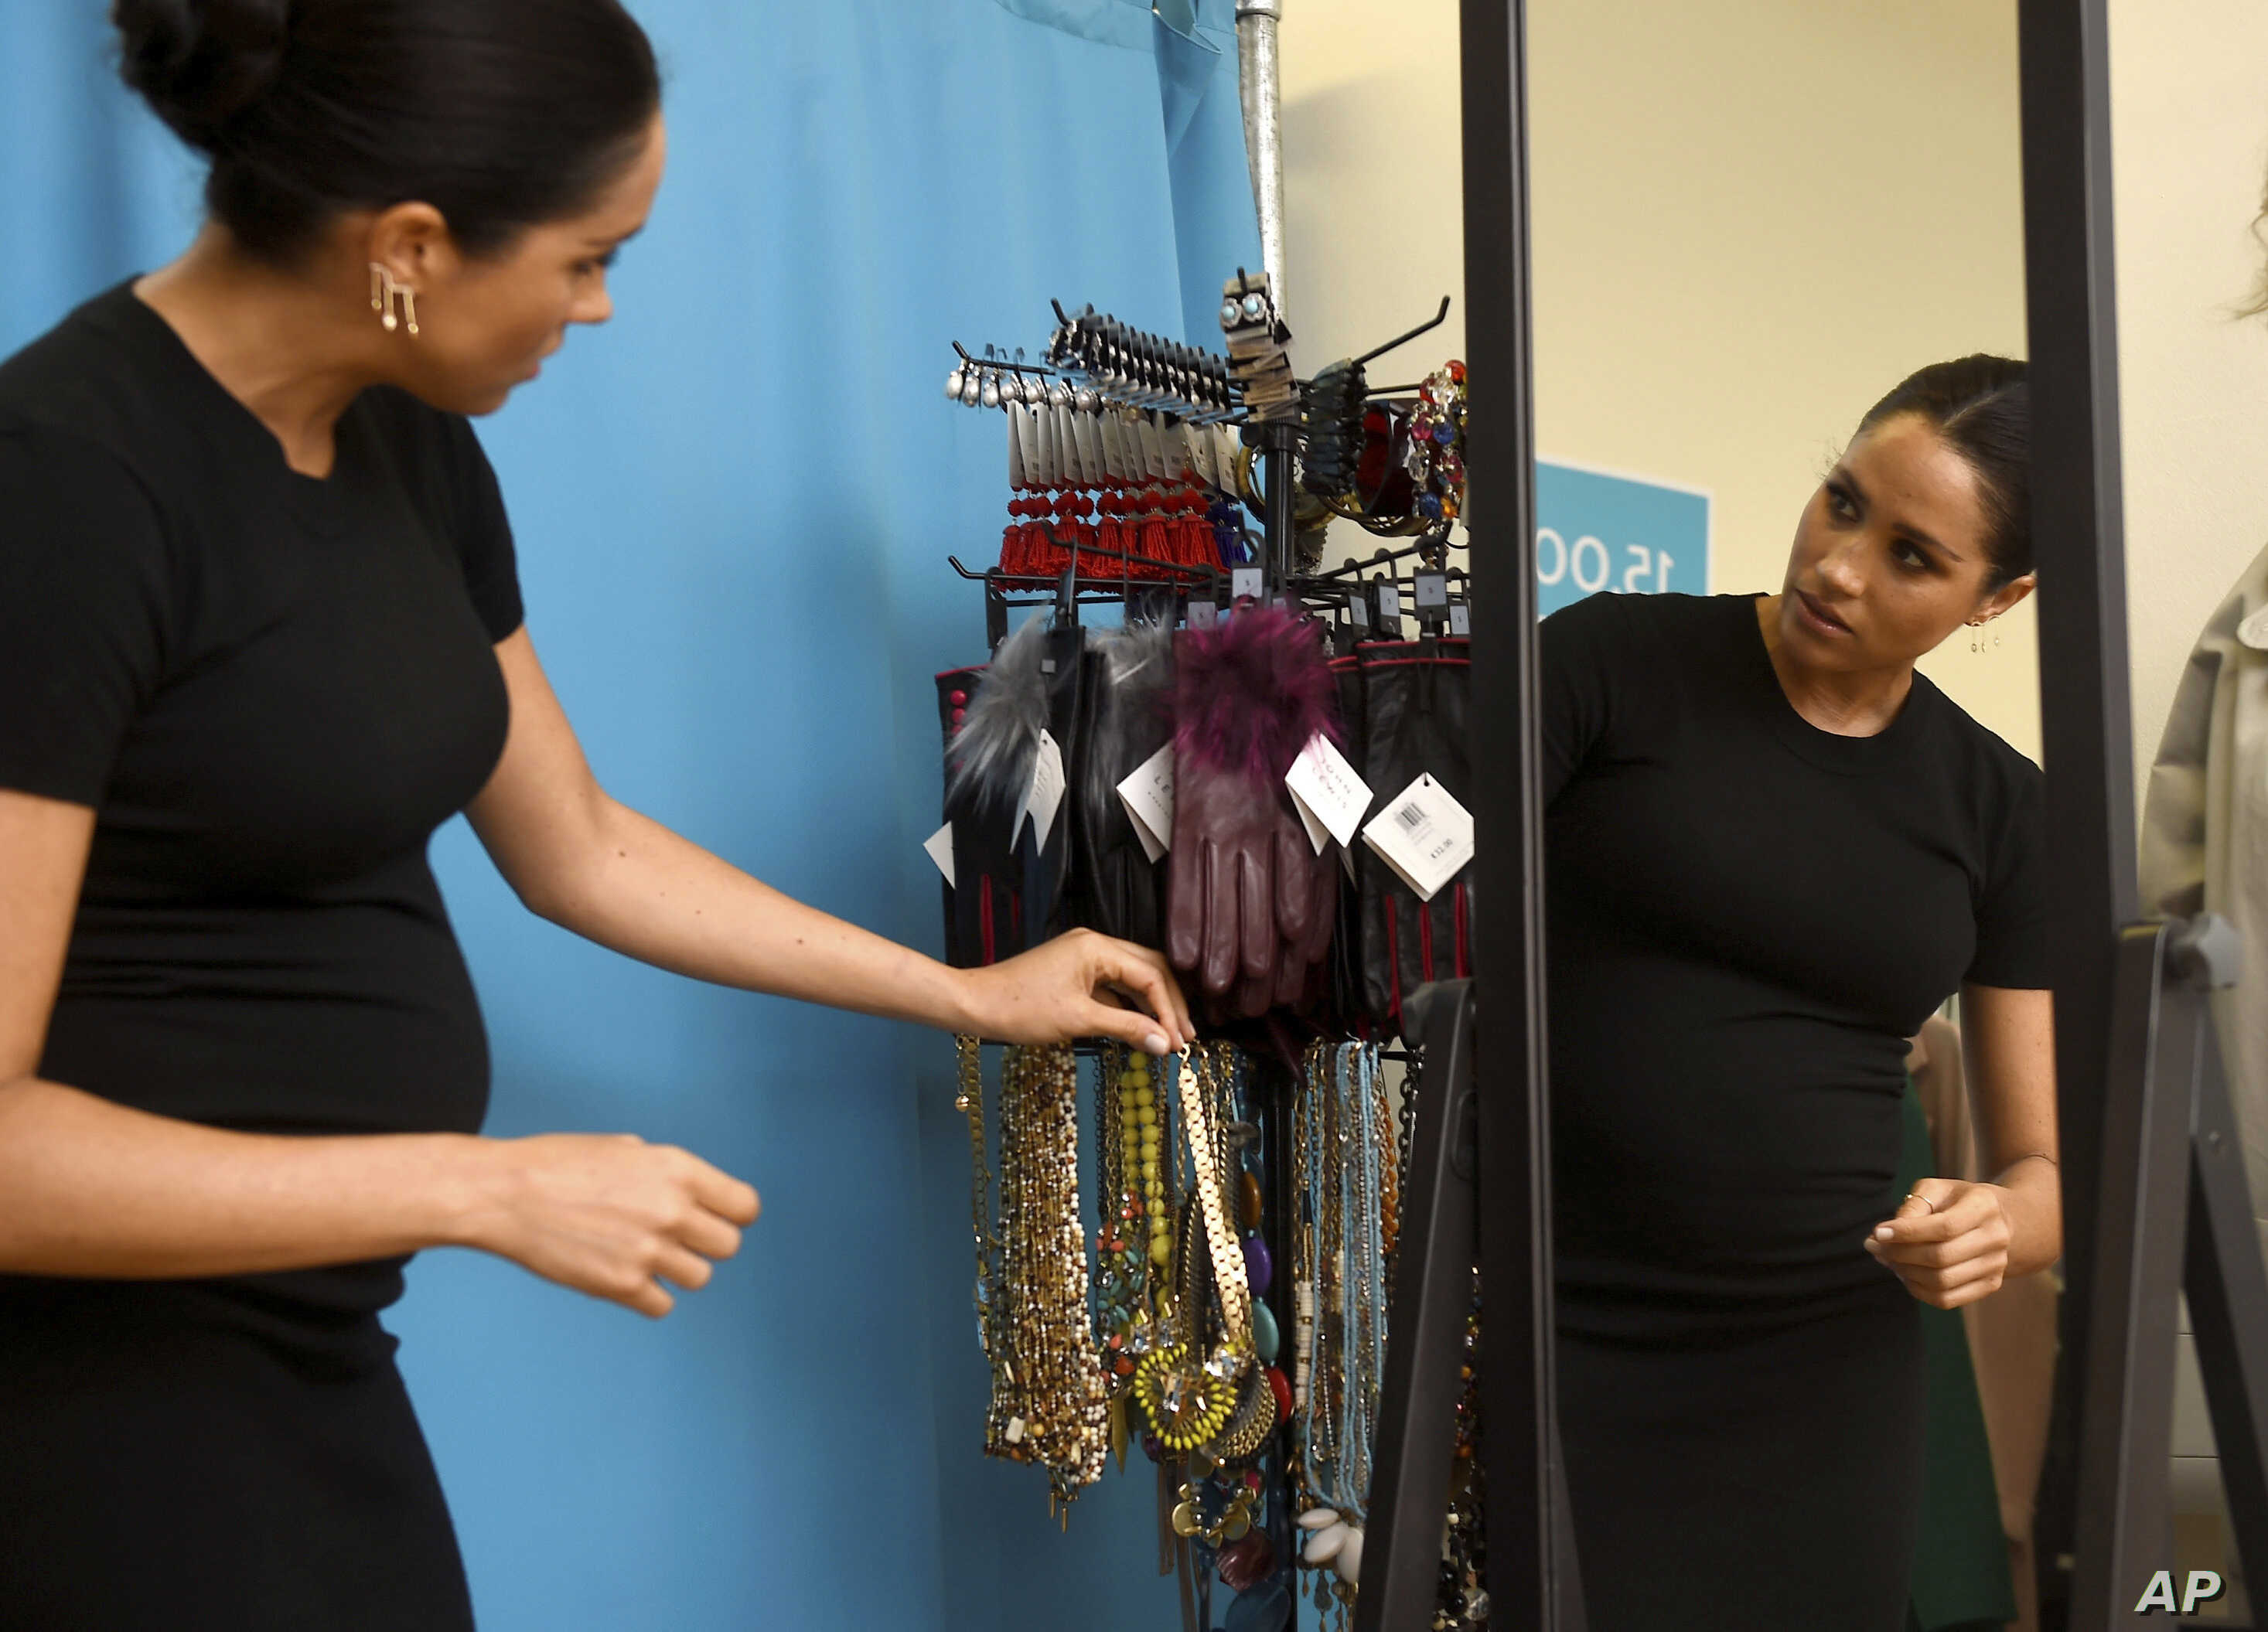 Meghan, the Duchess of Sussex, who is expecting her first child in spring, is reflected in a mirror at right, as she inspects clothes intended for women returning to work during a visit to Smart Works career centre in West London, Jan. 10, 2019.